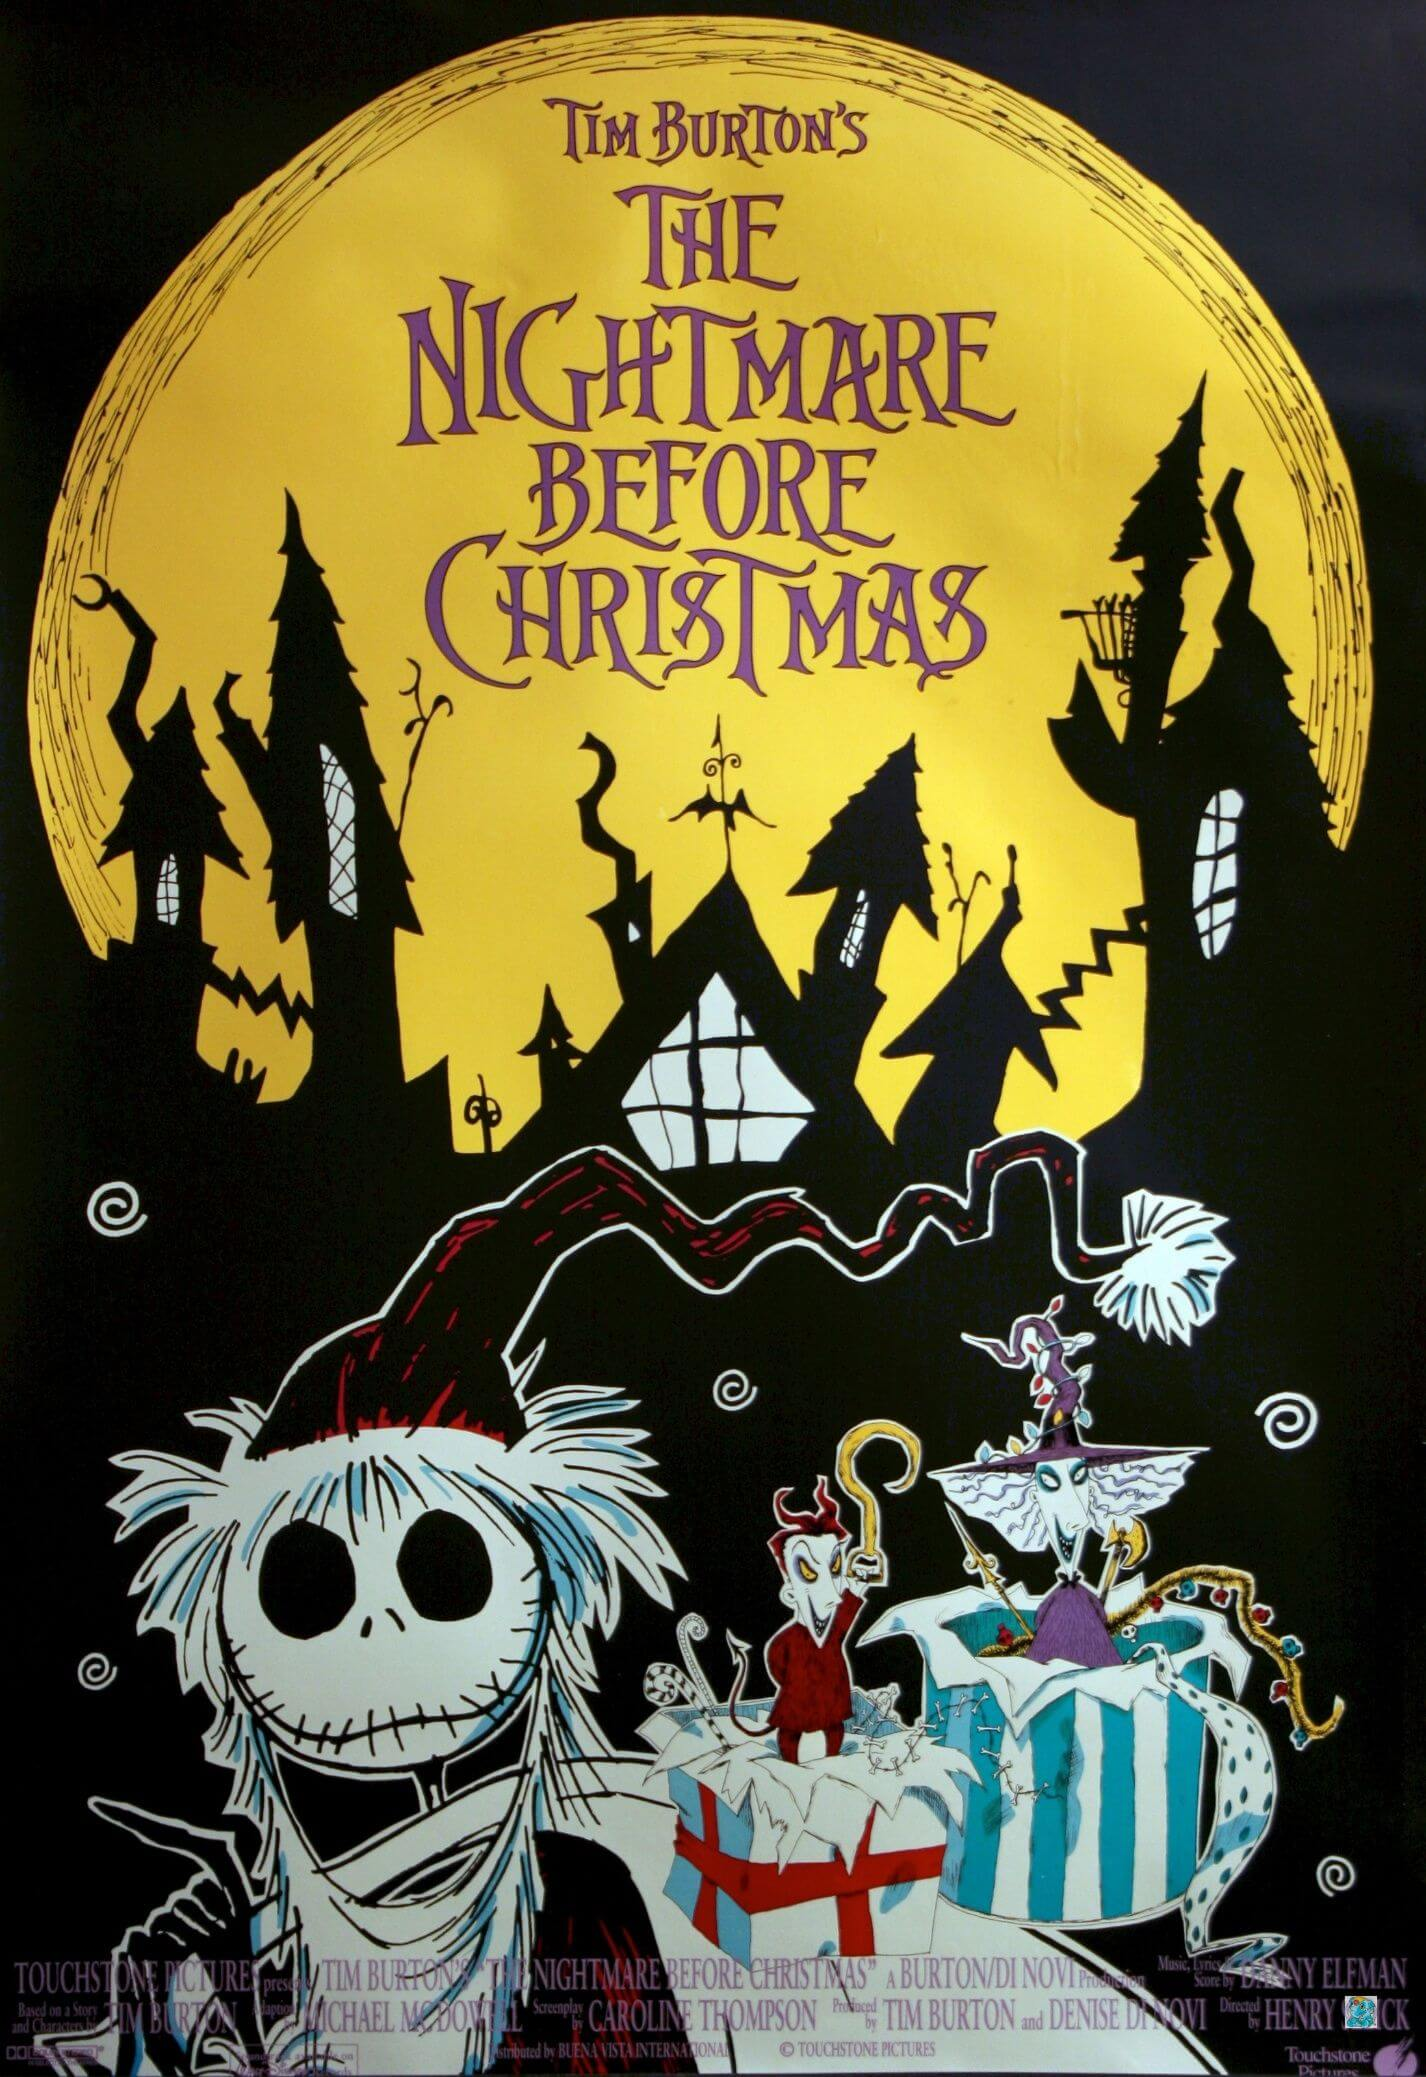 THE NIGHTMARE BEFORE CHRISTMAS halloween movie